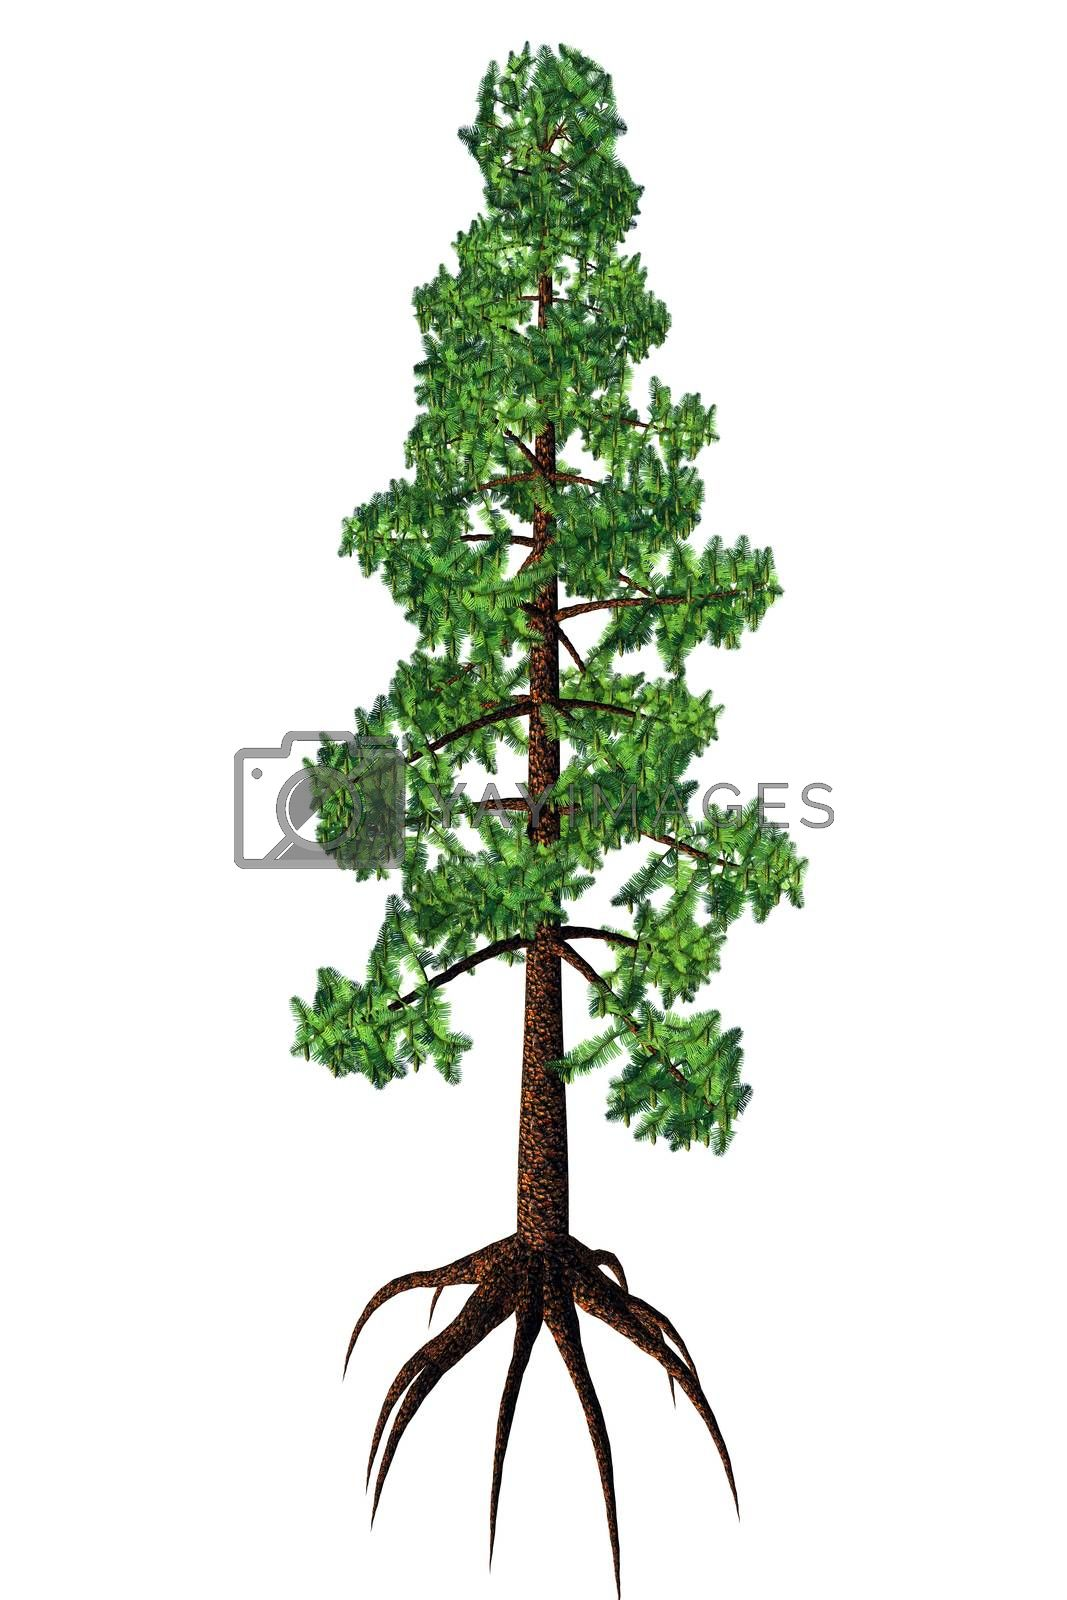 Wollemia was thought to be an extinct coniferous tree but was found to be living in Australia in 1994.